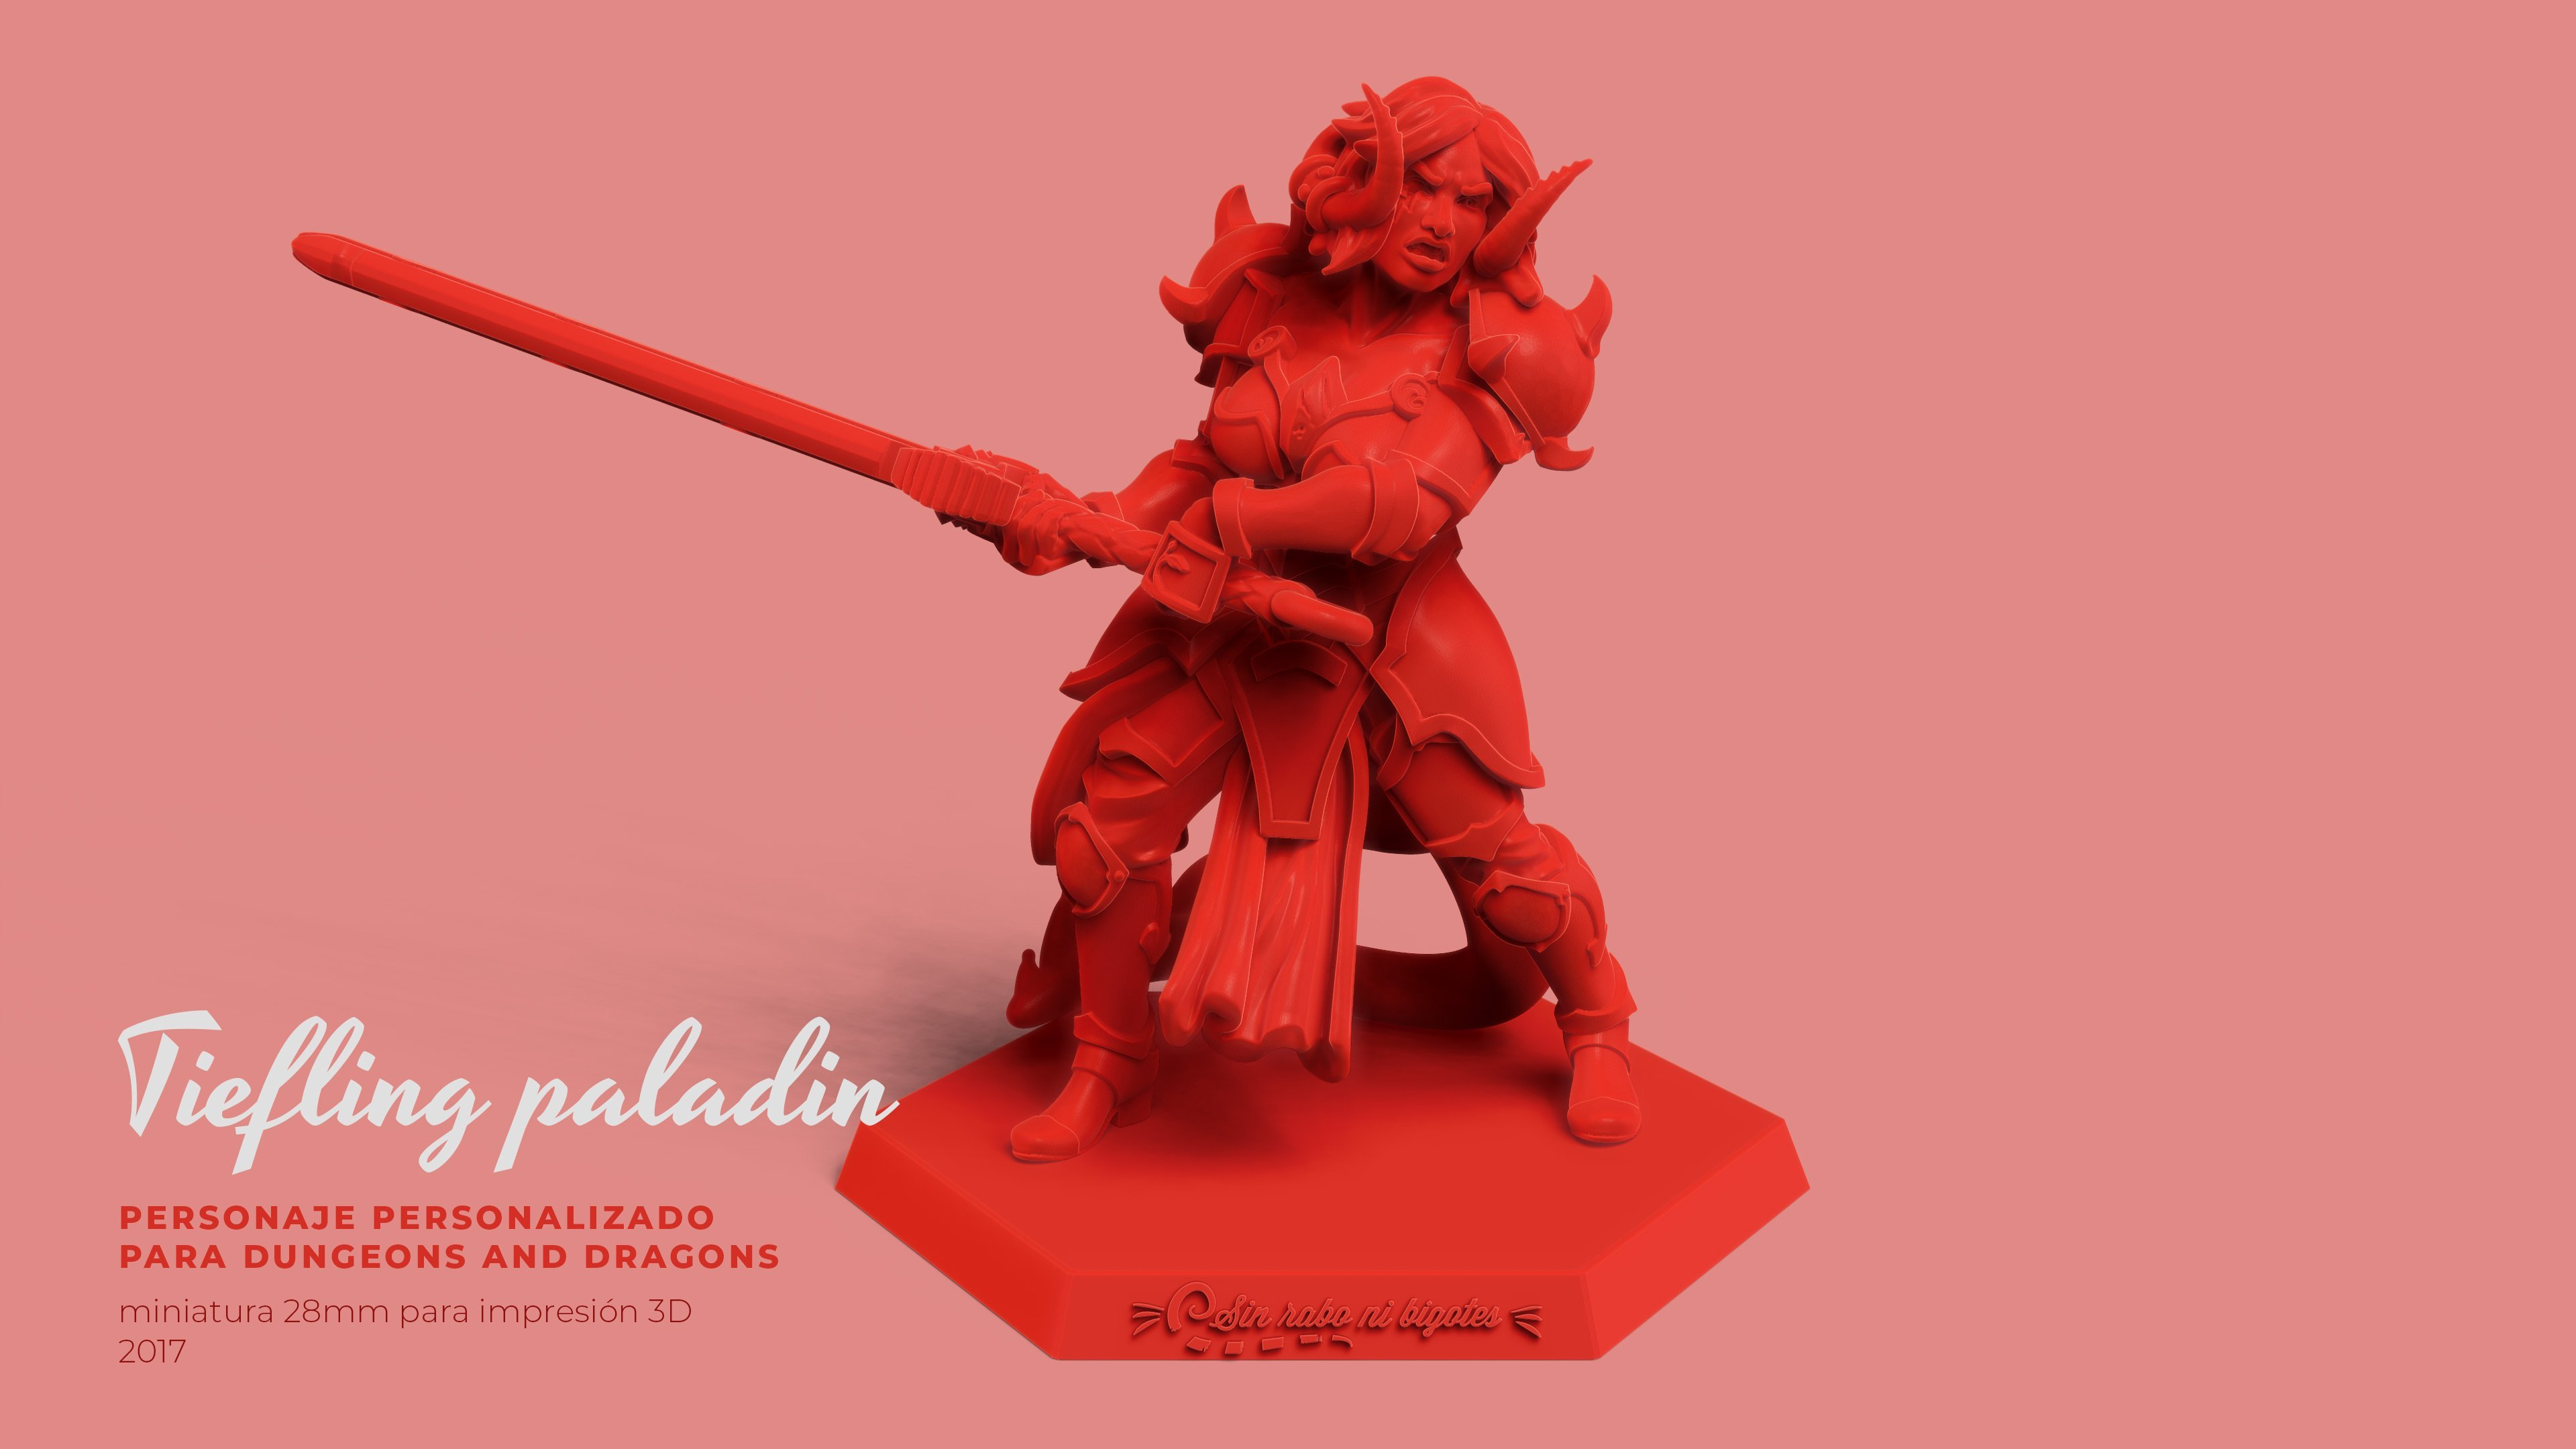 miniatura tiefling paladin demonia dungeons and dragons